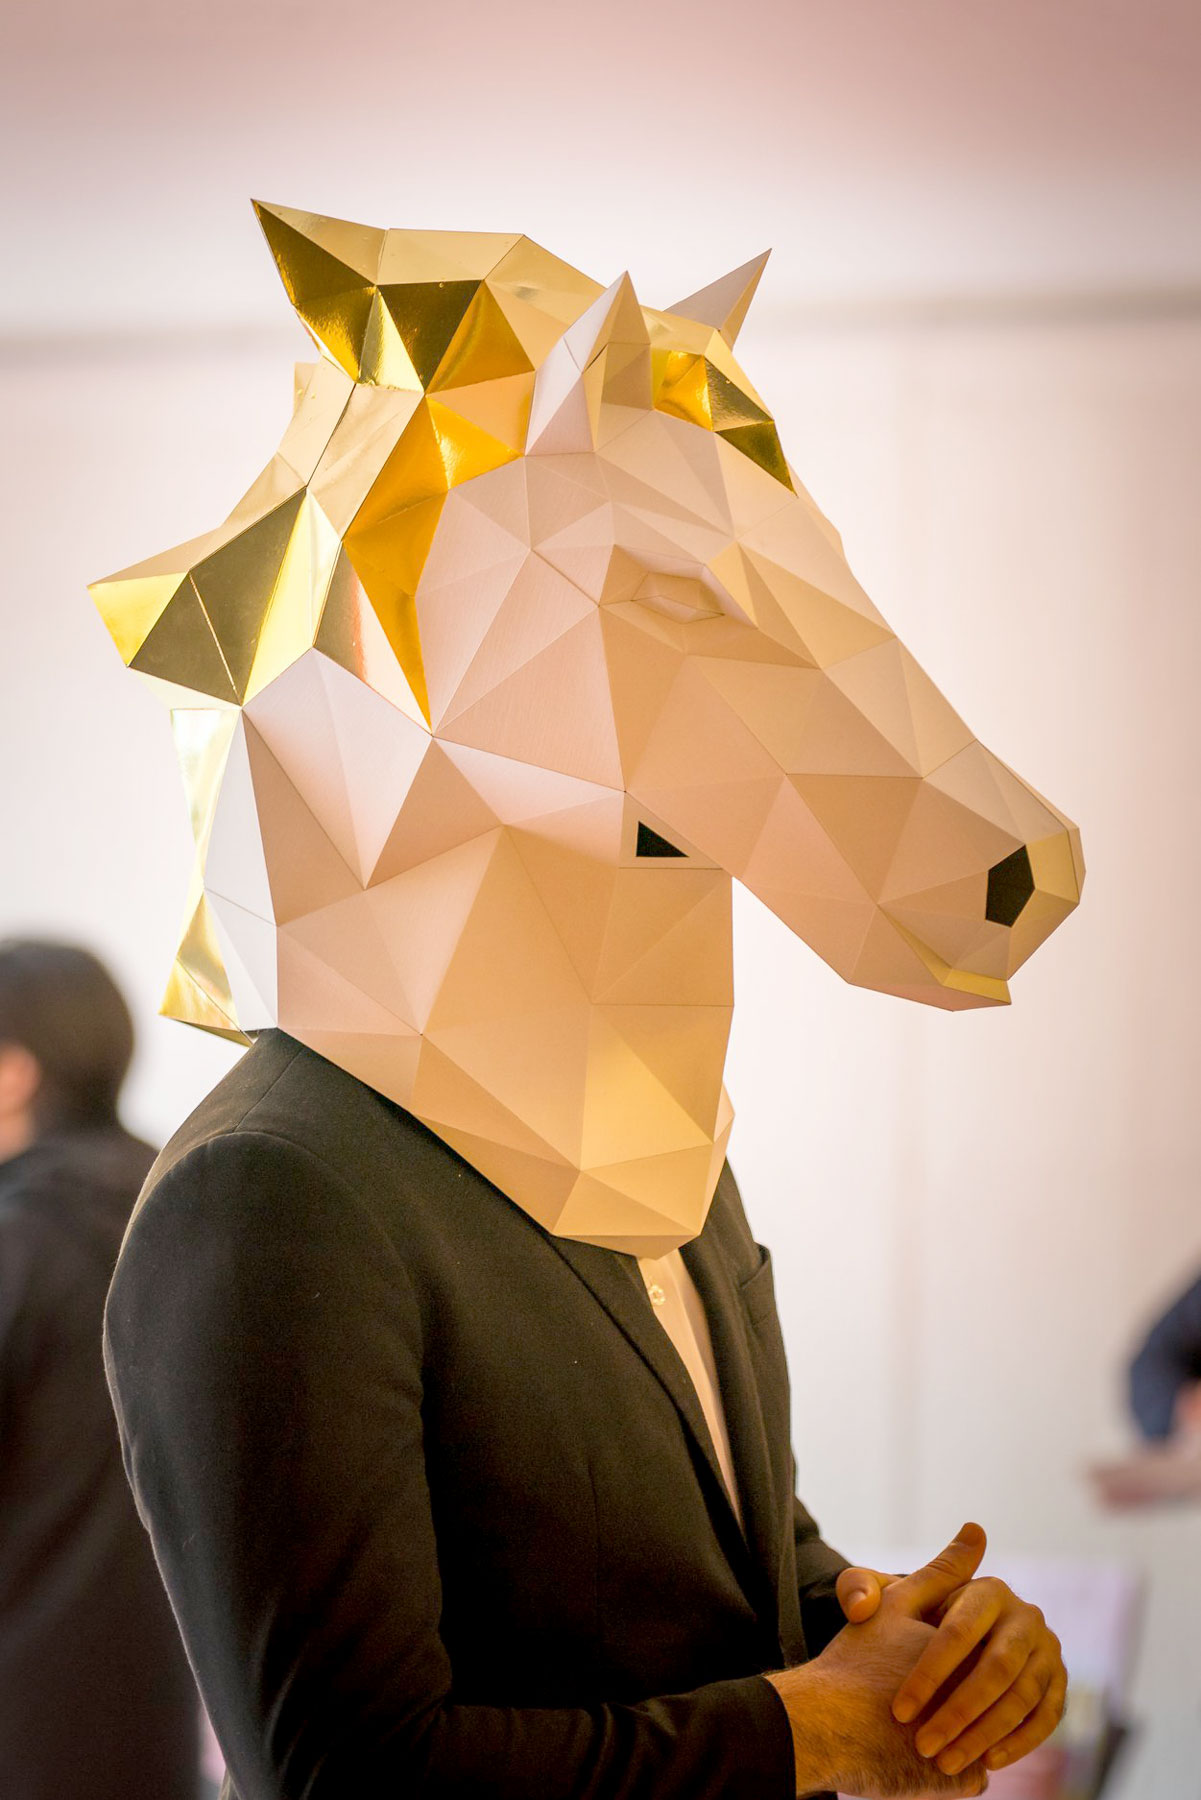 papier paper cheval horse longchamp masque mask origami papercraft dt workshop